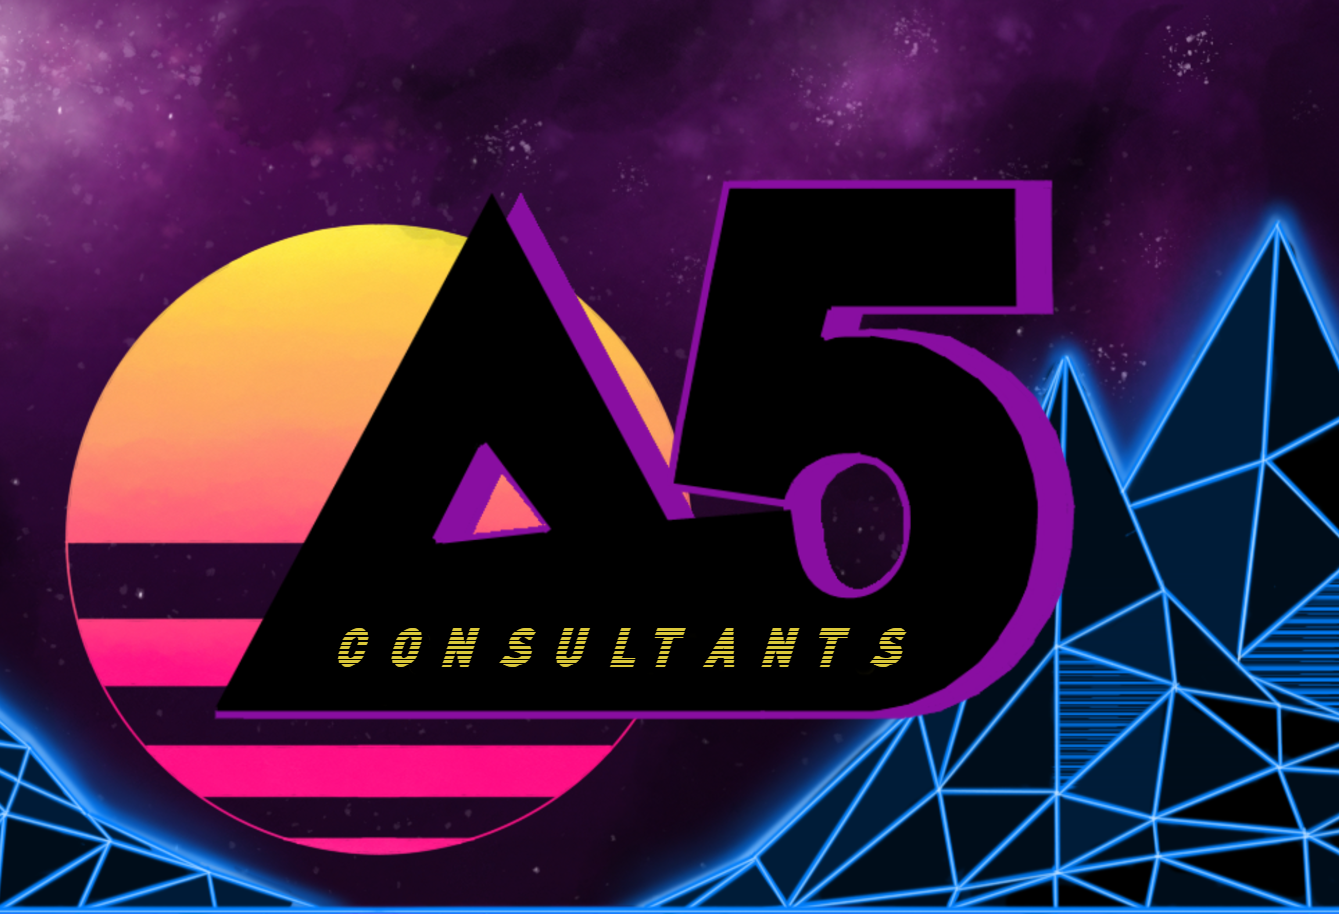 A5 consultants